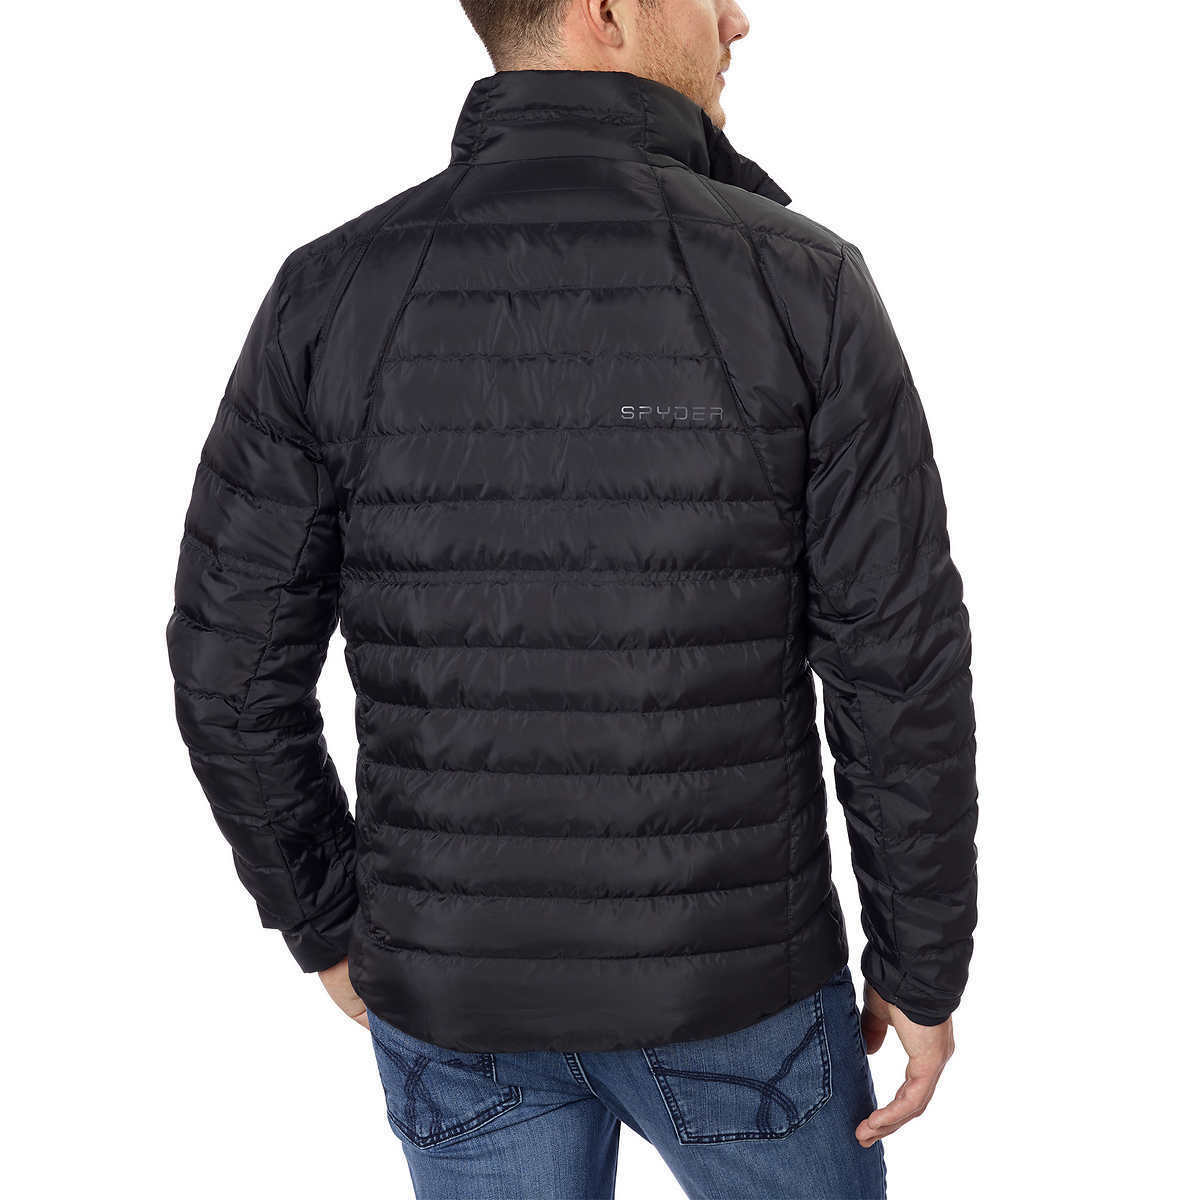 0820f254231434 Mens Spyder Prymo Down Jacket Coat Style 162001 Black Size L for ...